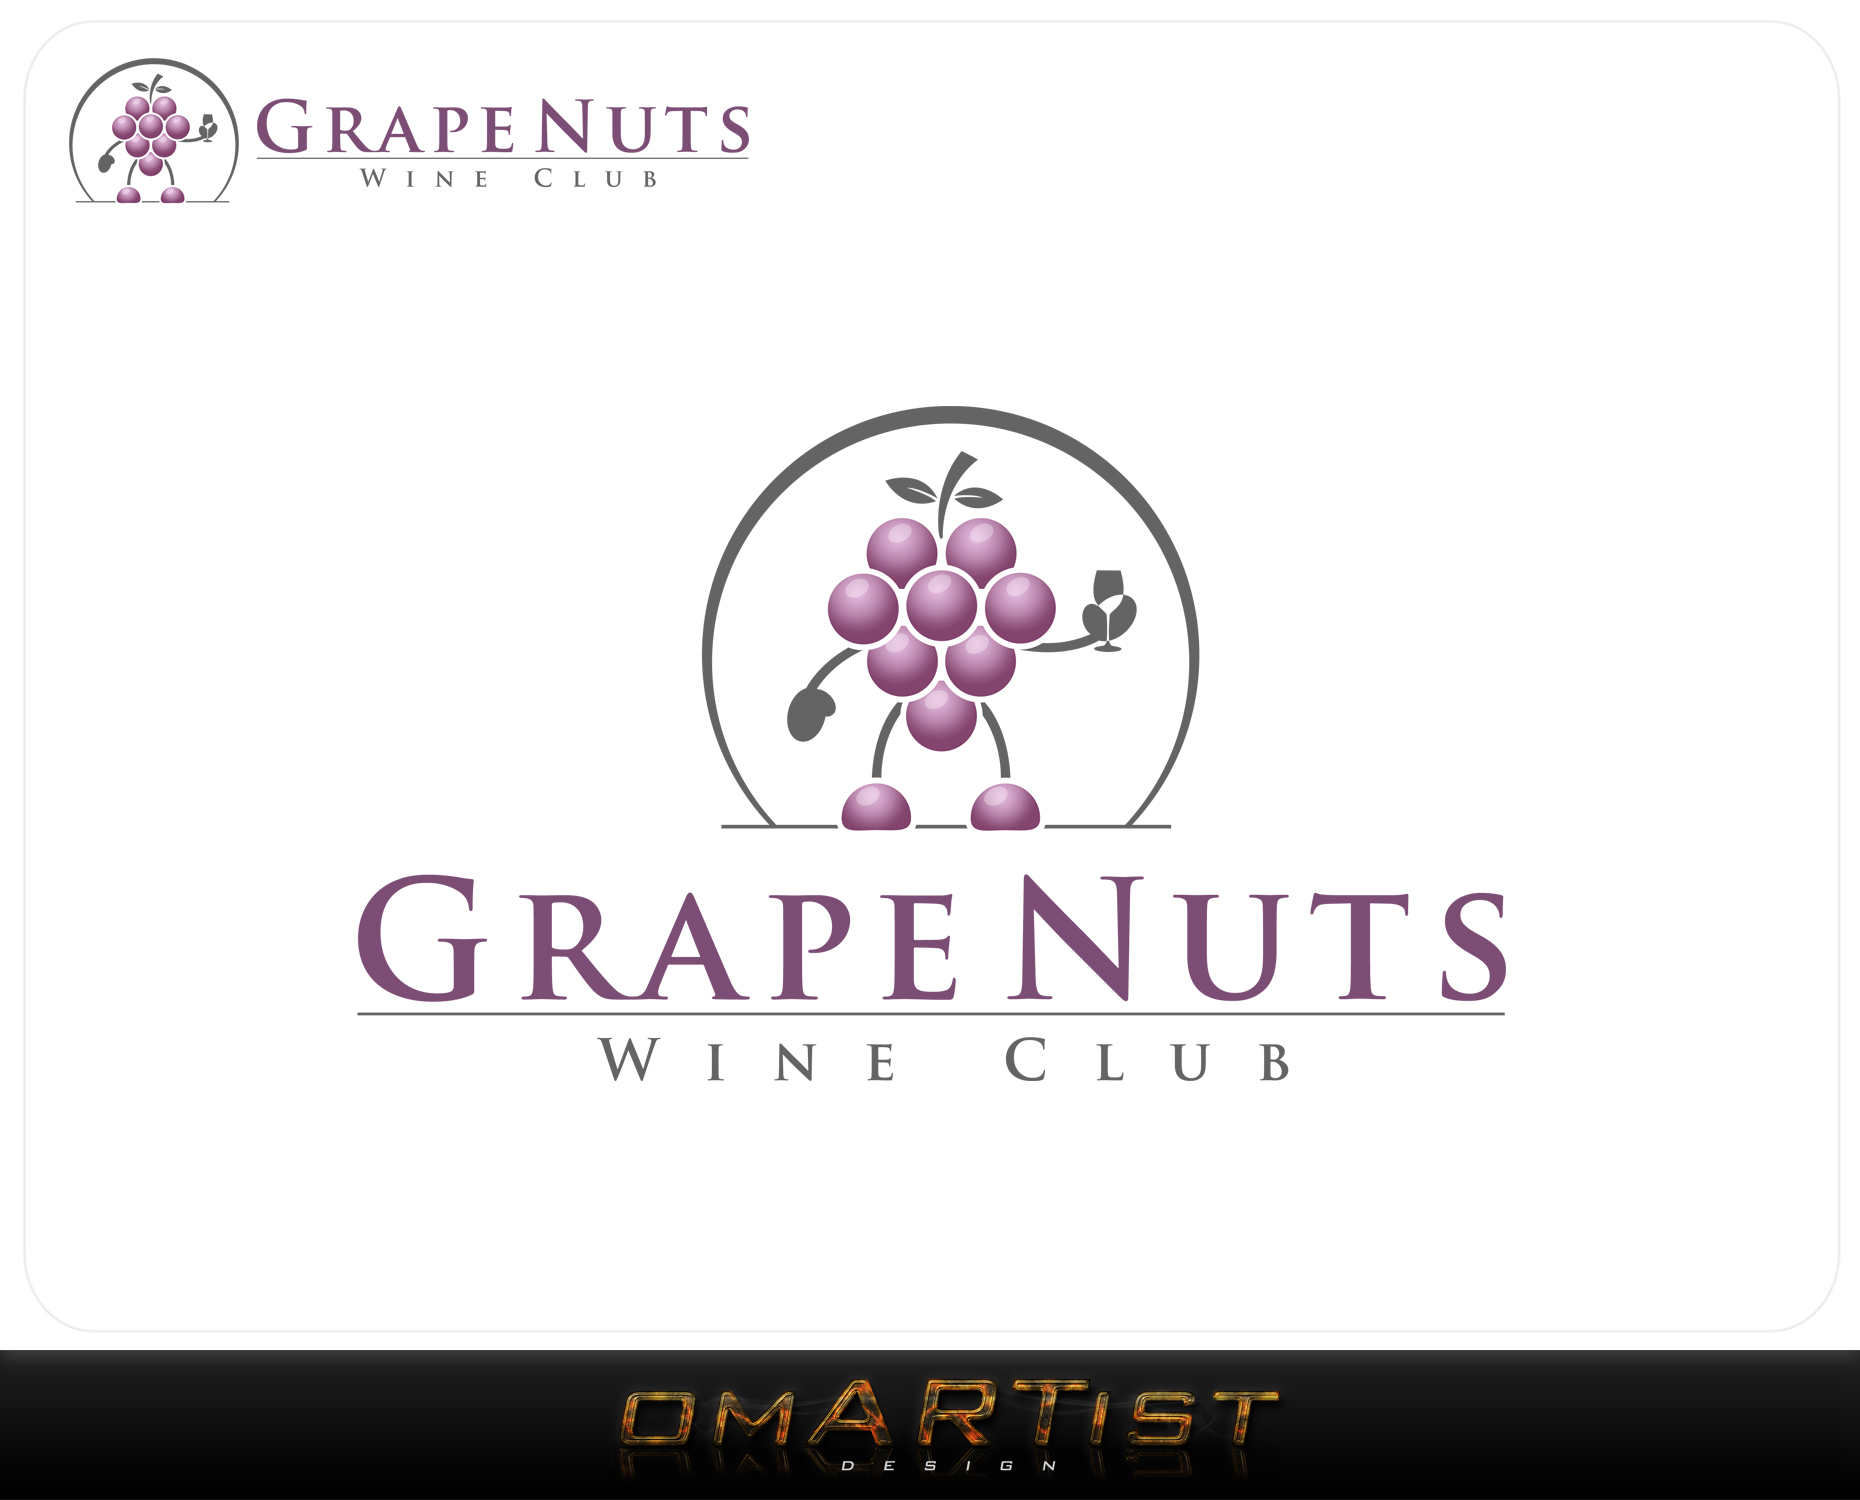 Logo Design by omARTist - Entry No. 135 in the Logo Design Contest Artistic Logo Design for Grape Nuts Wine Club.